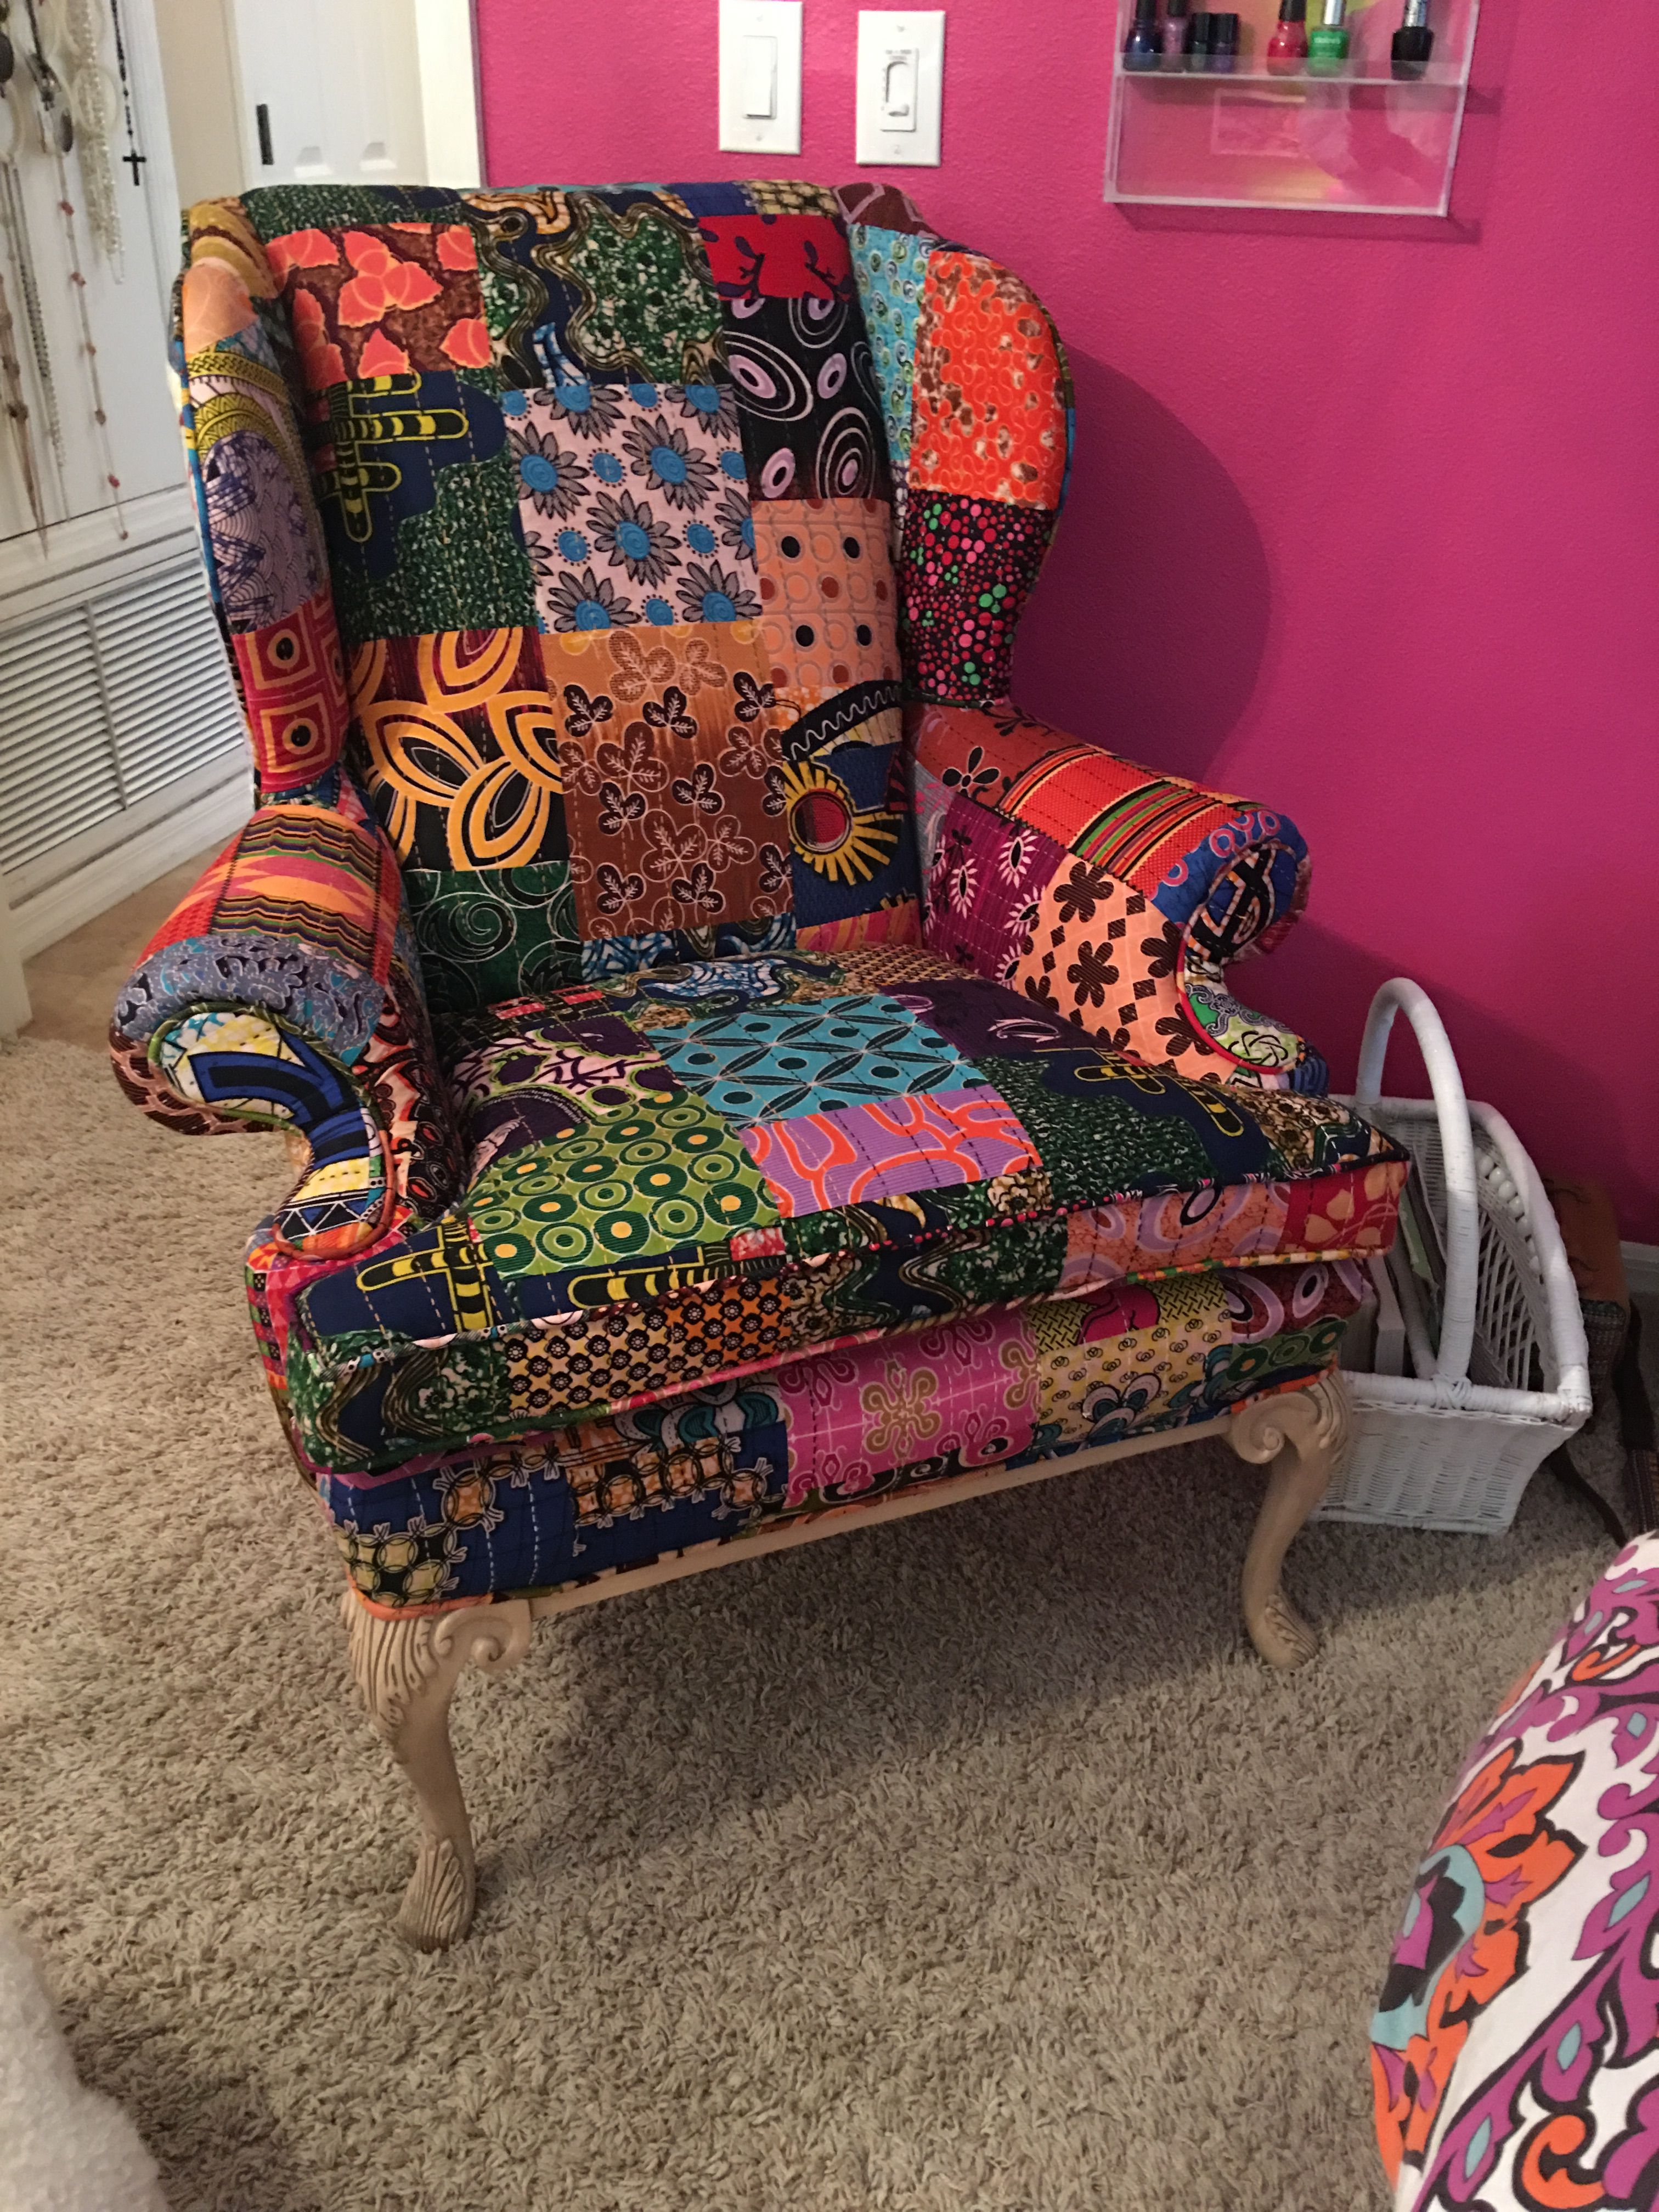 Pin by Lisa Ordway on Oh So Boho | Furniture, Wingback ...